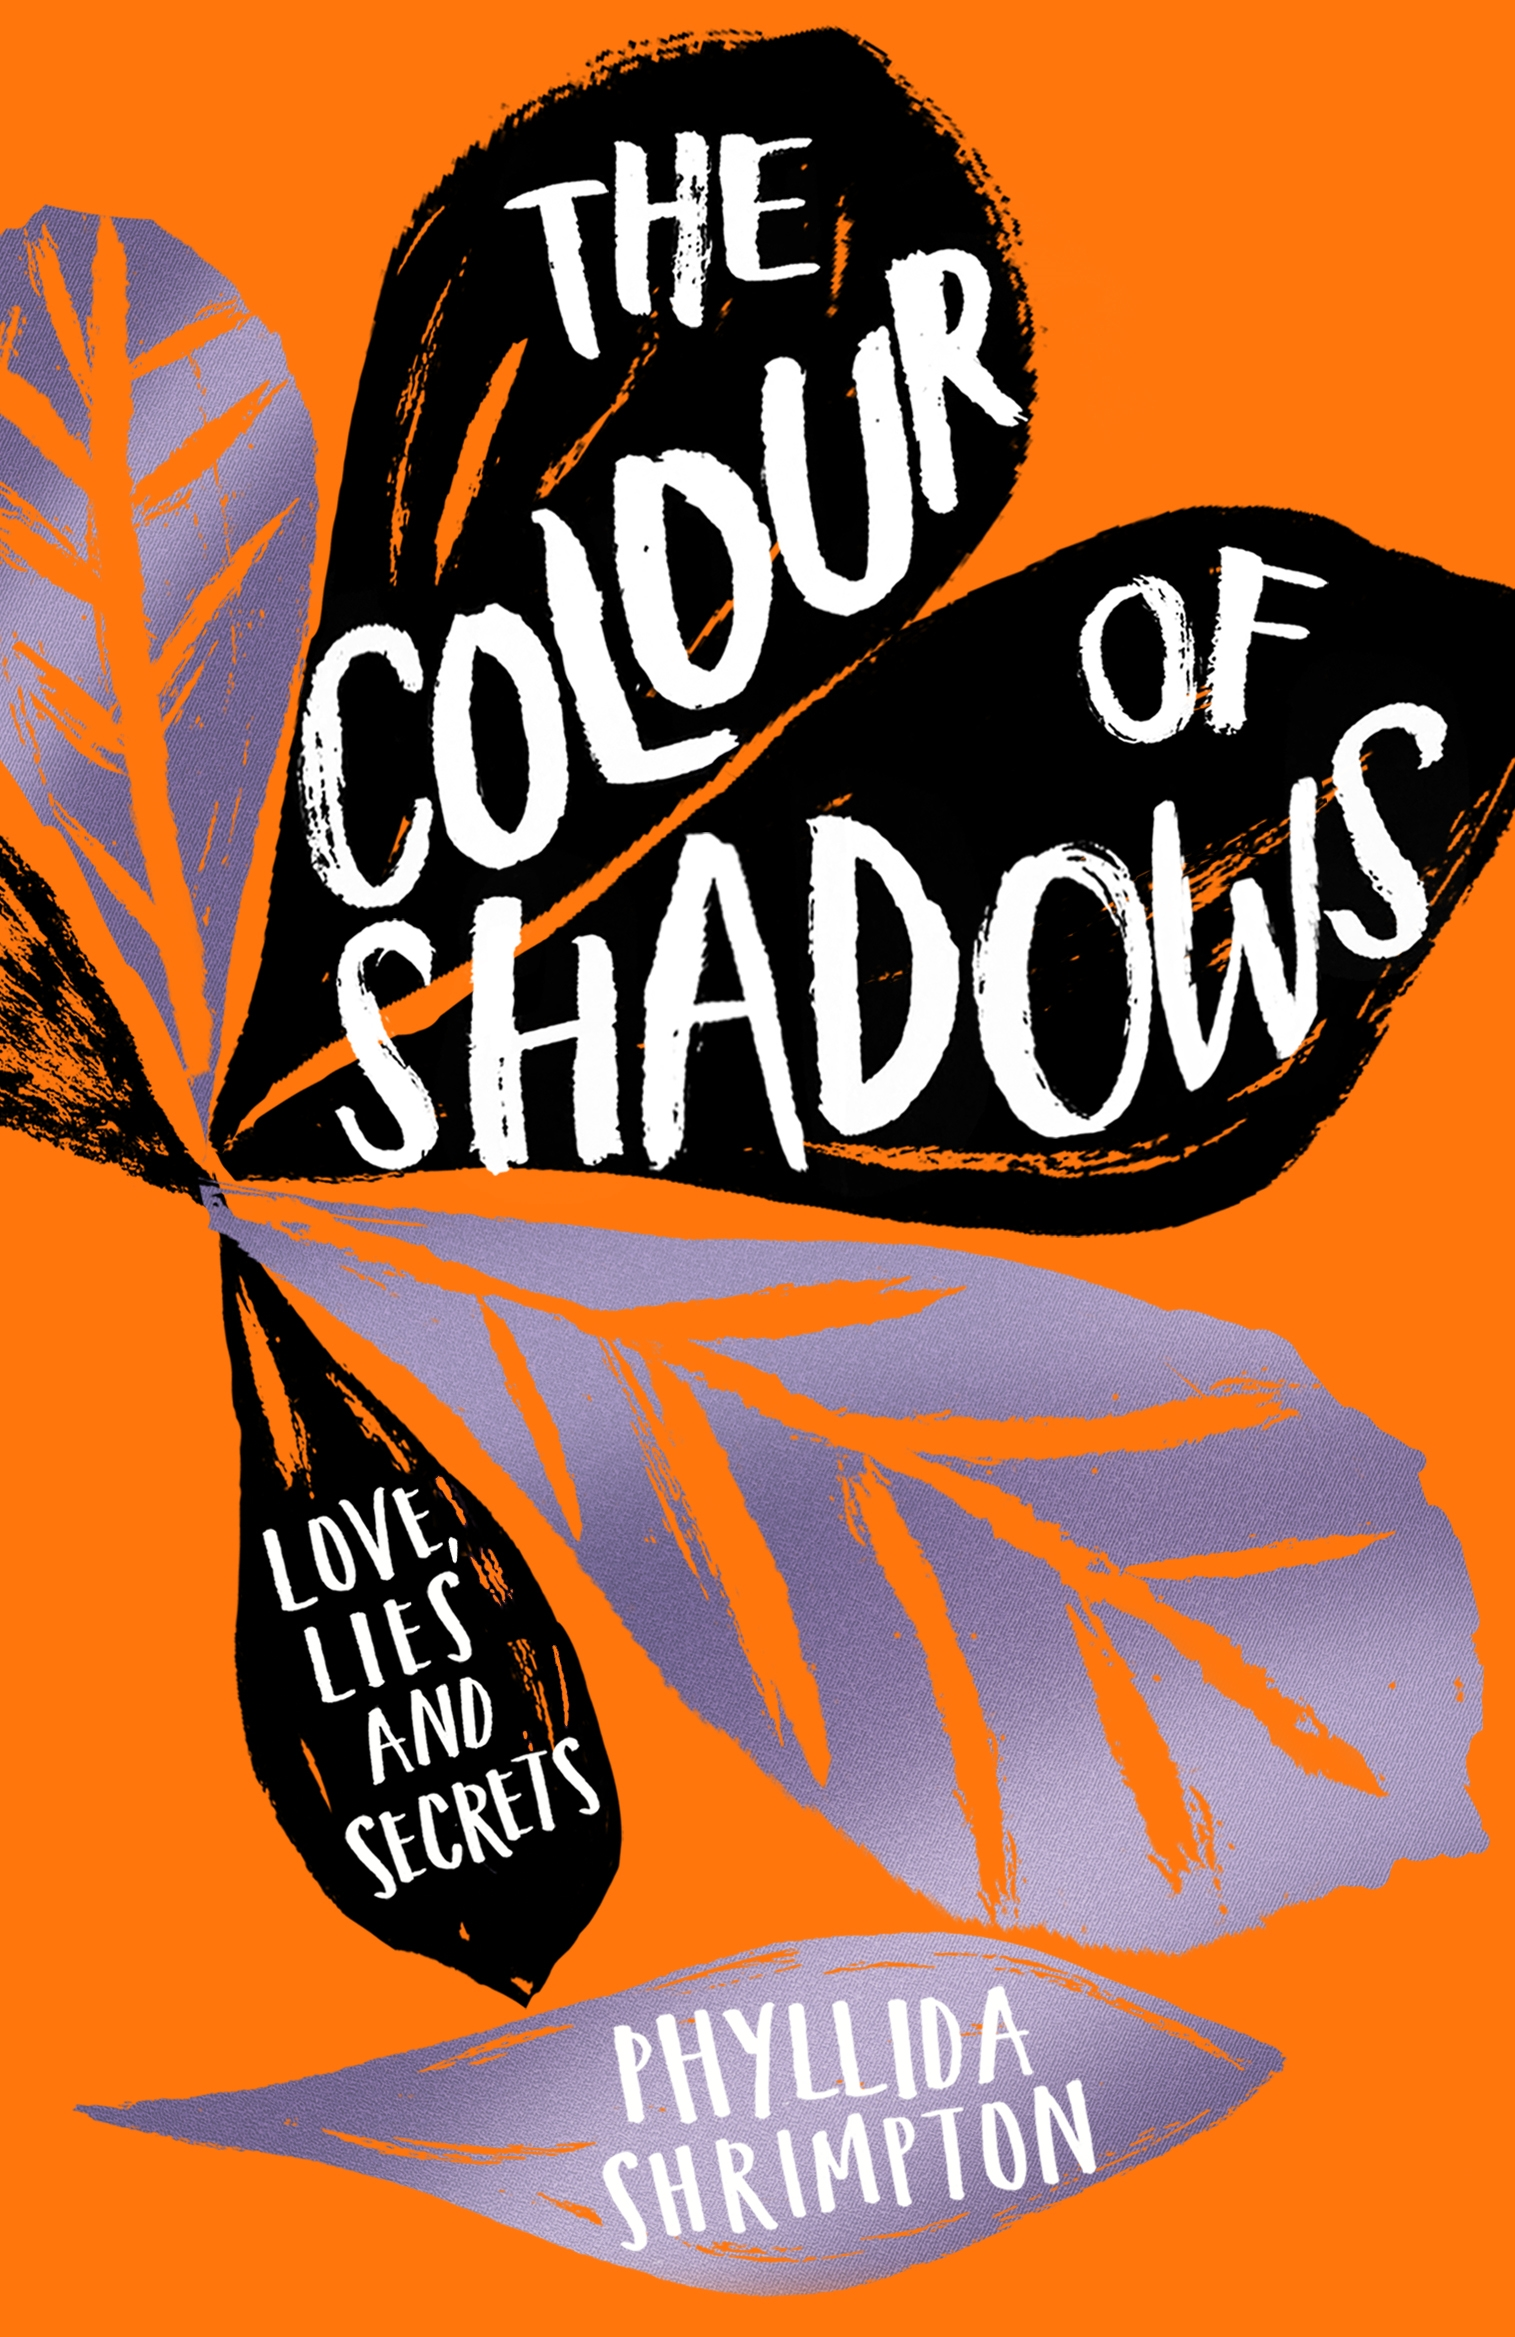 The Colour of Shadows by Phyllida Shrimpton